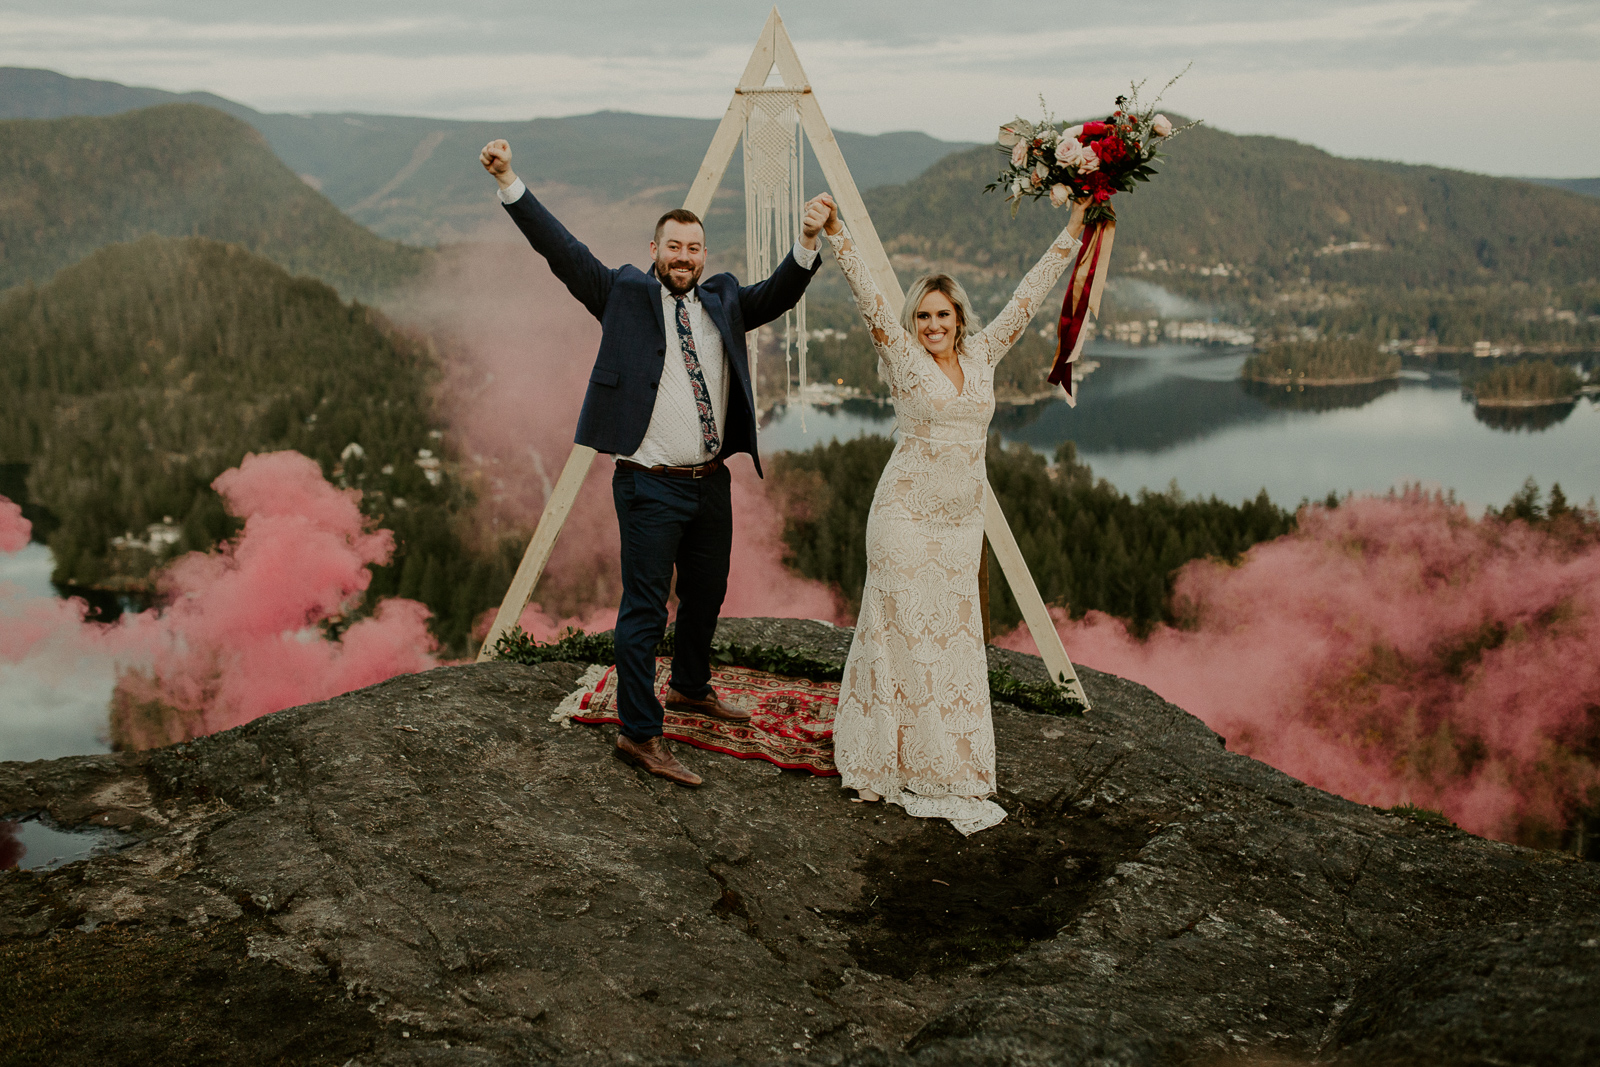 Luke Lambertson Photo_BritishColumbia_Canada_AdventurousCouple_Elopement_IMG-8737.jpg